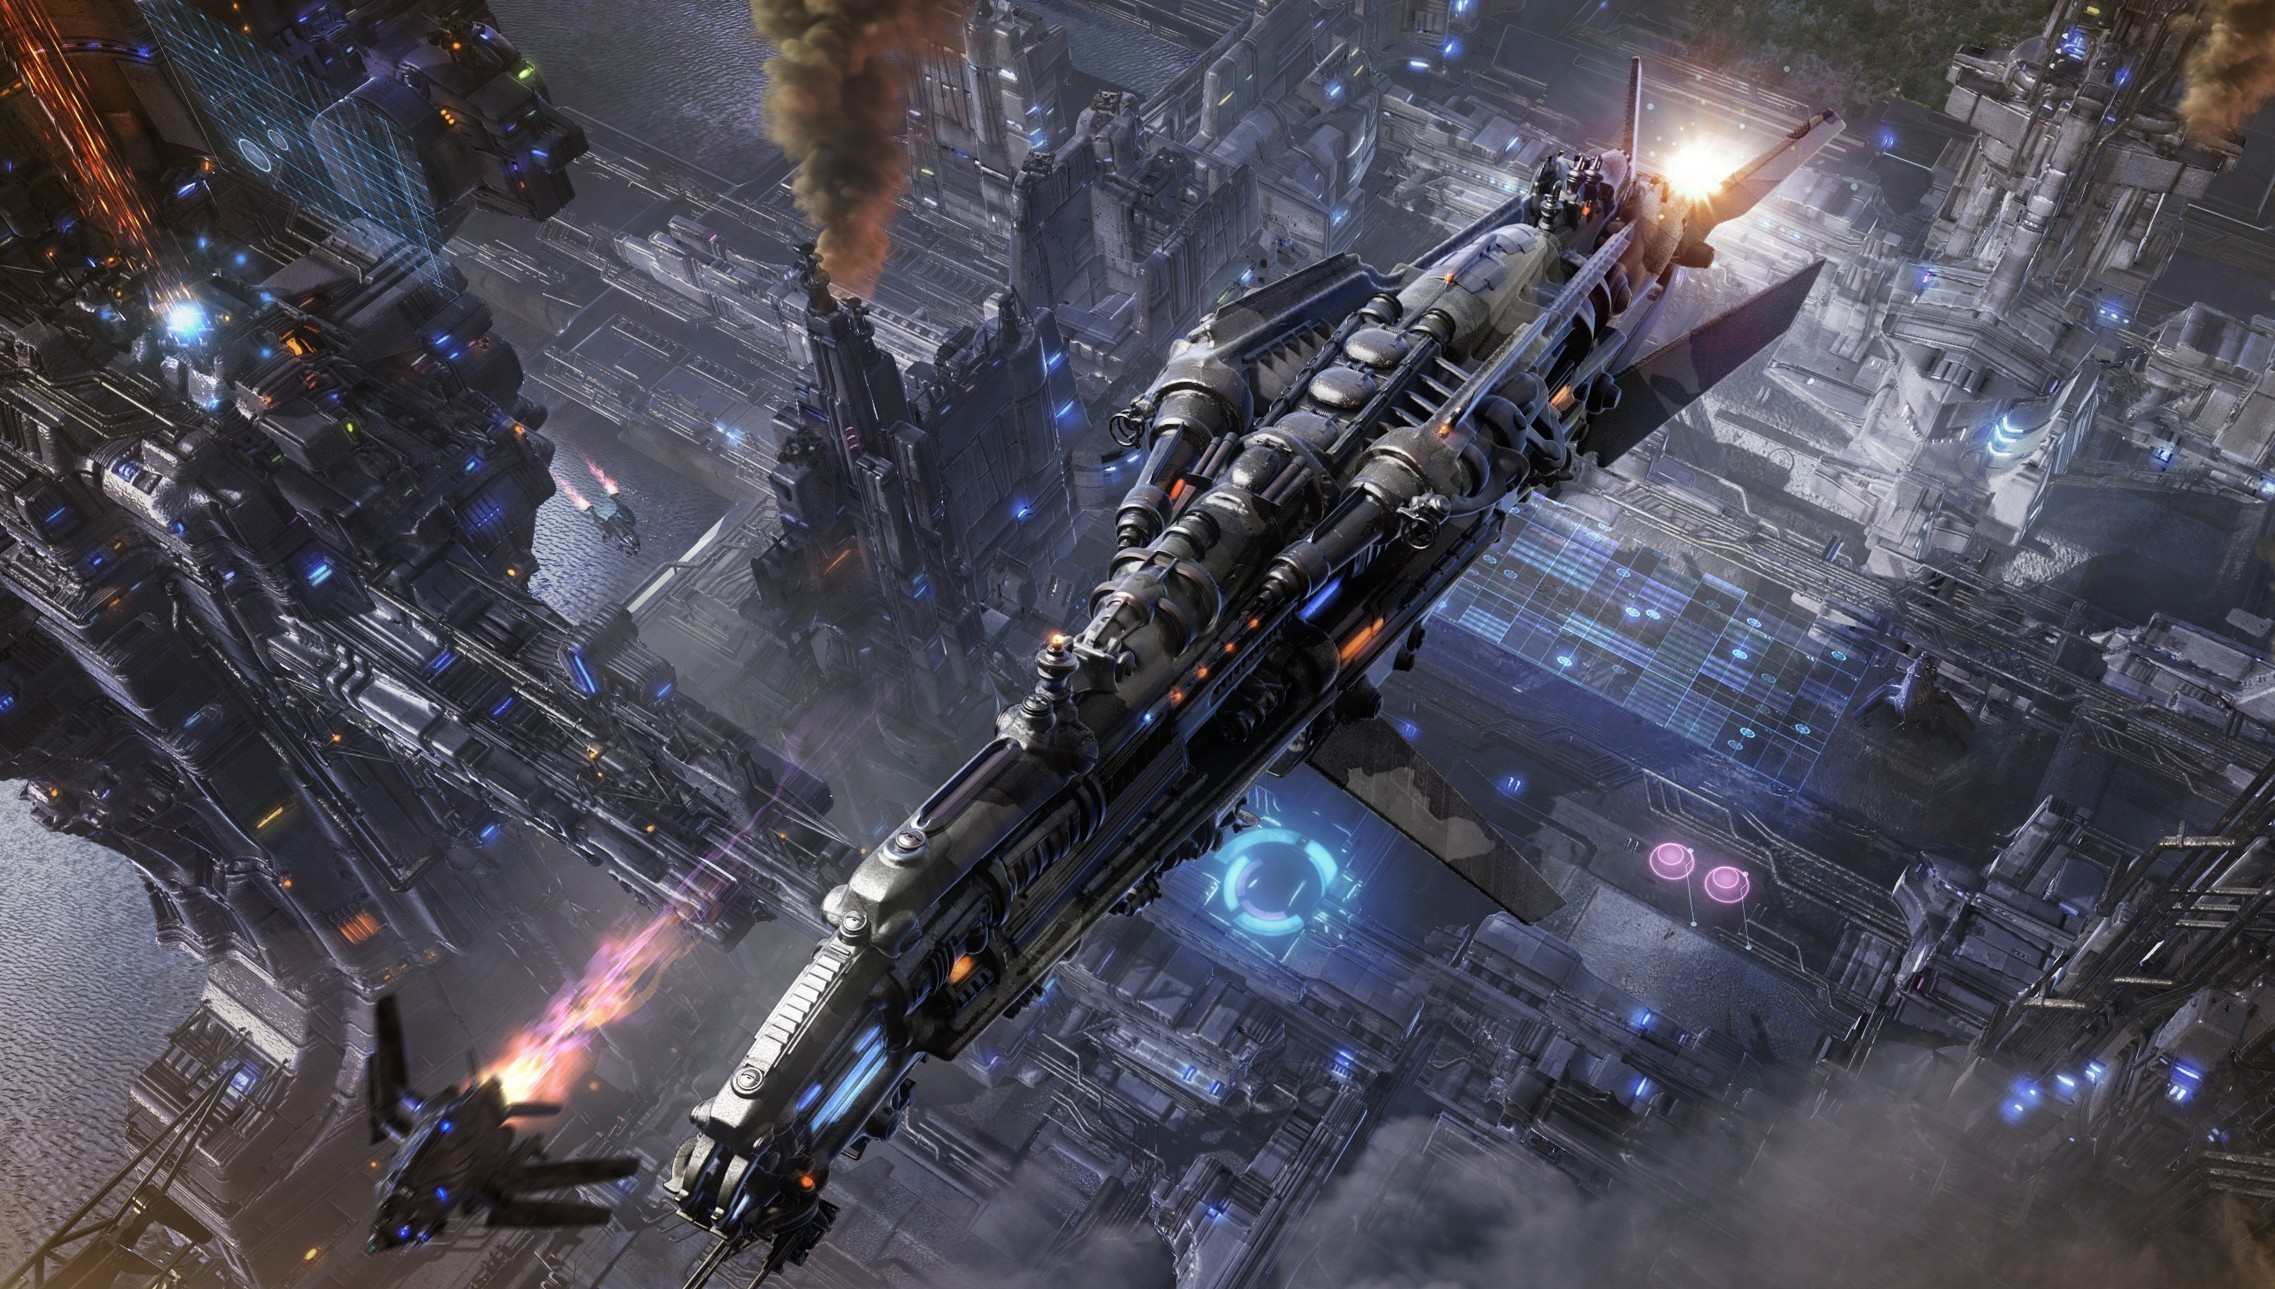 Hd Wallpaper Science Fiction: Spaceship HD Wallpaper